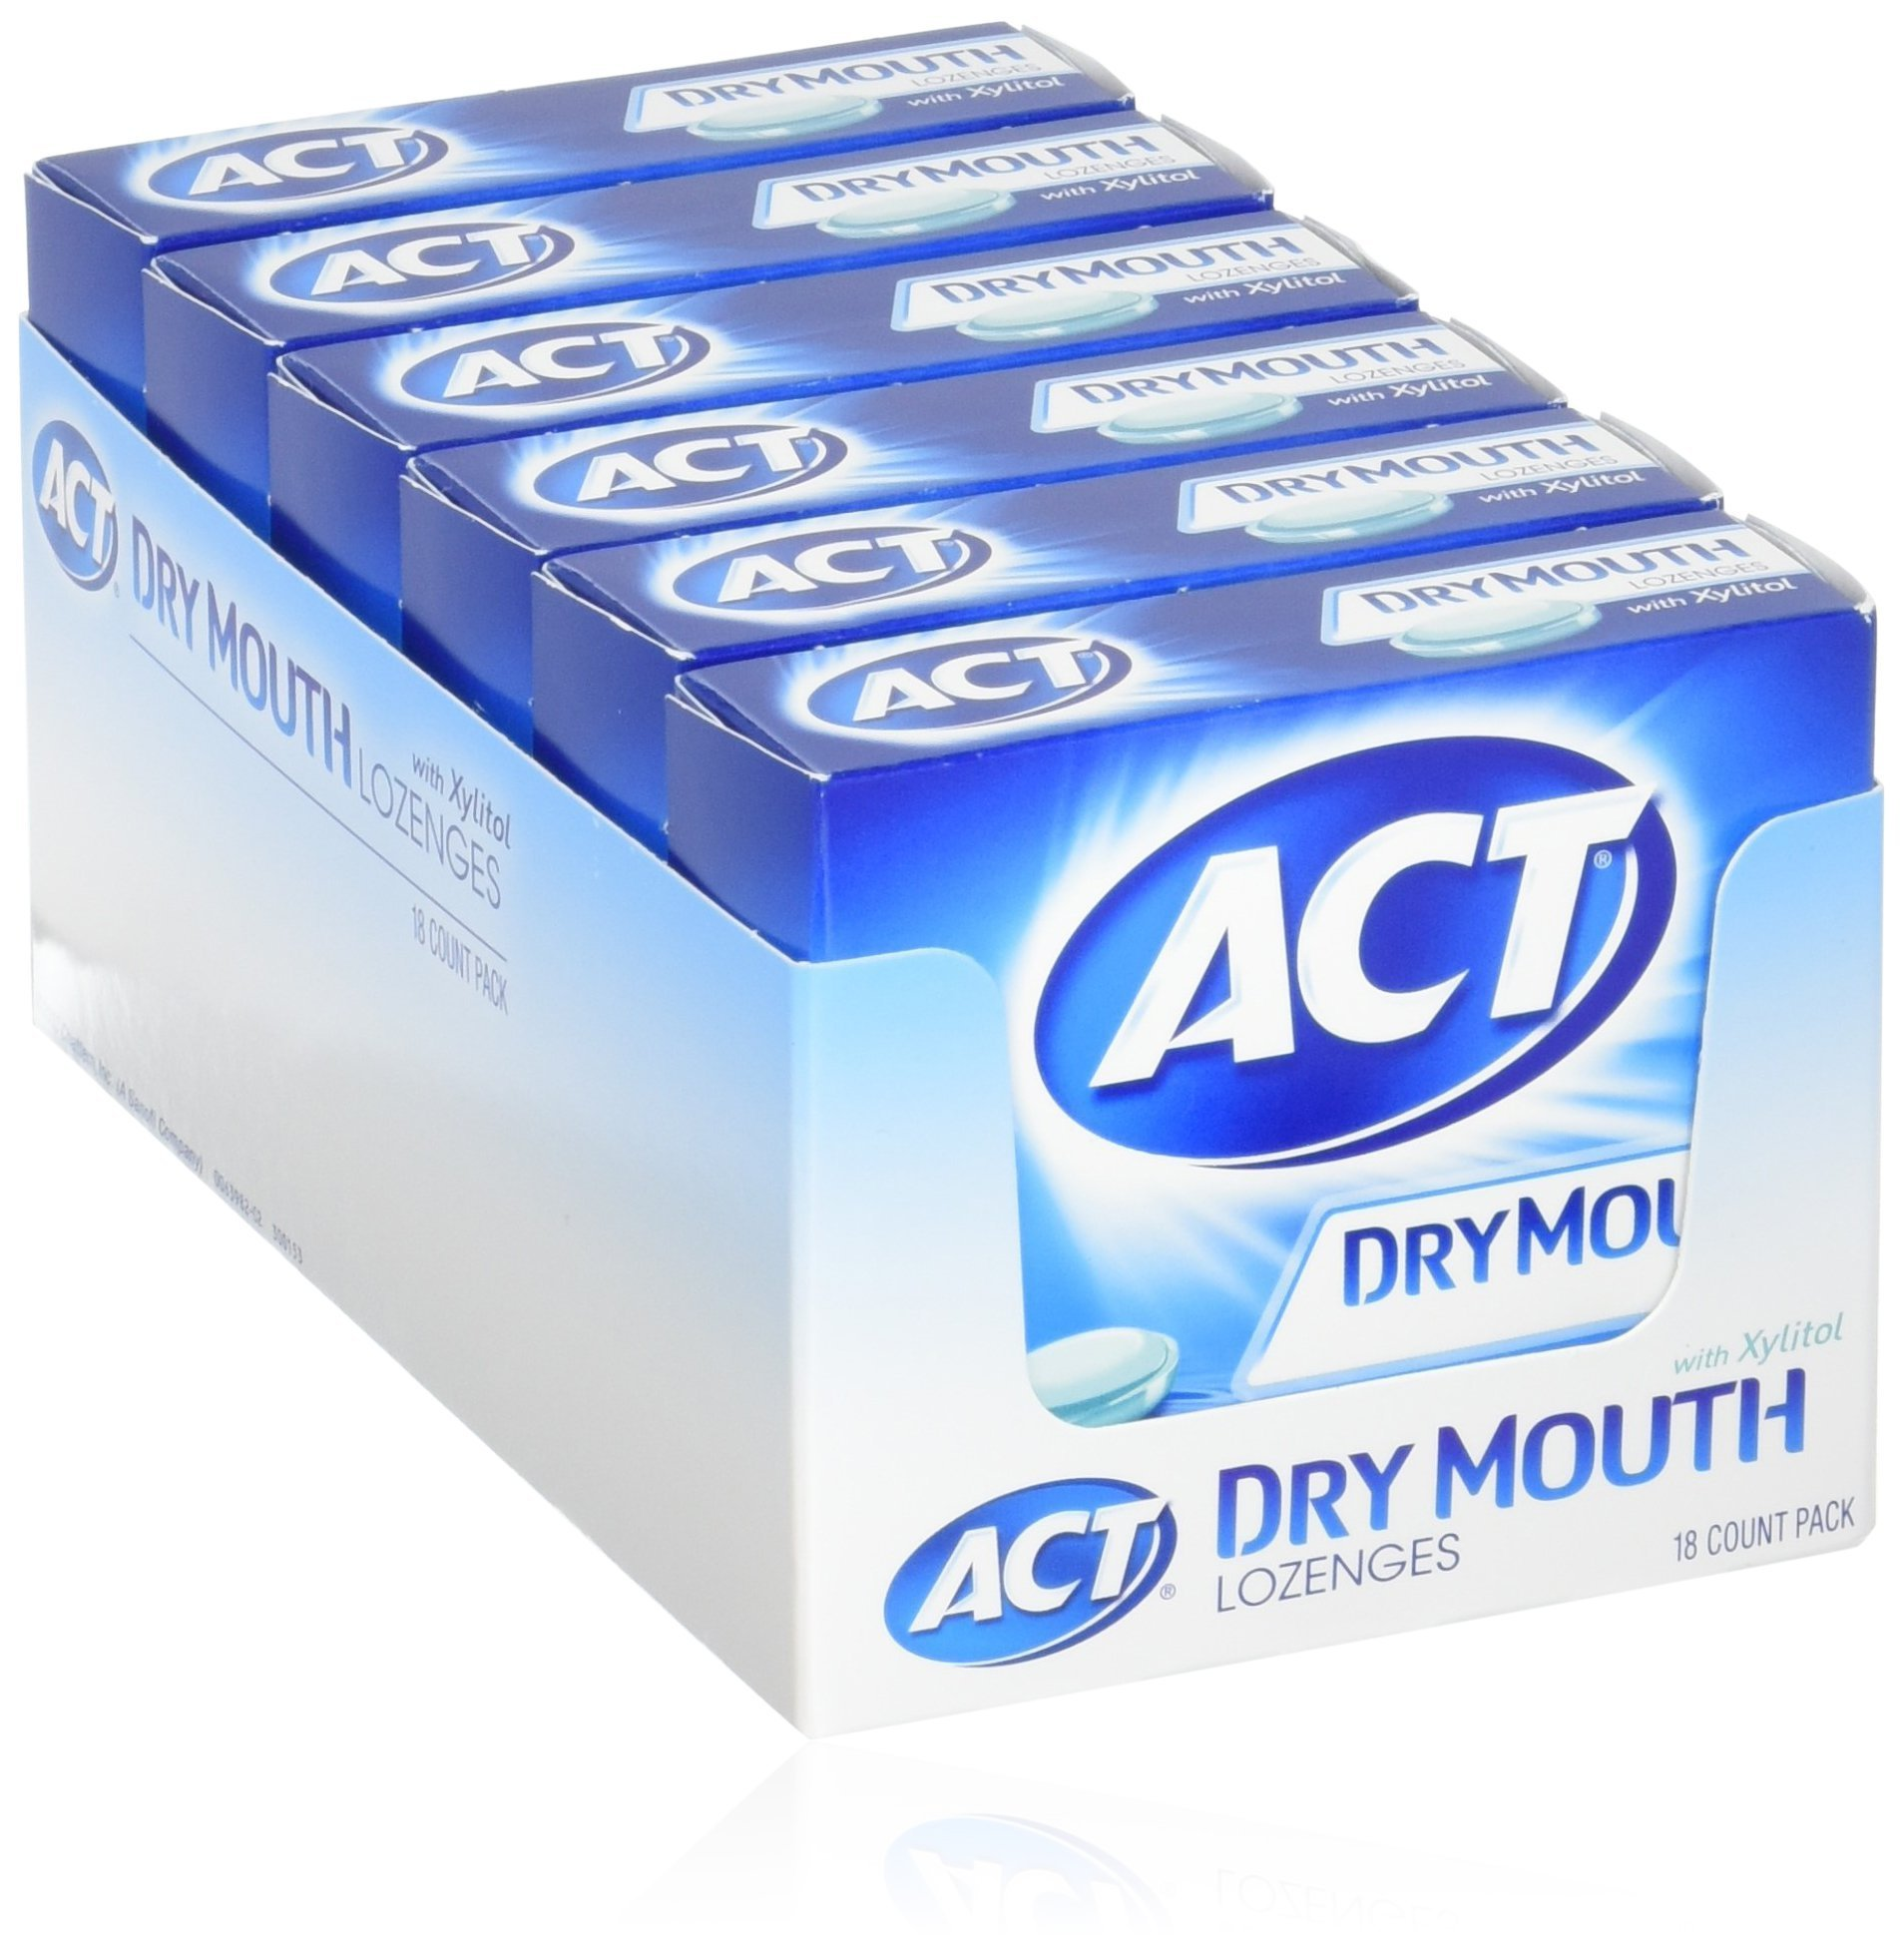 ACT Total Care, Dry Mouth Lozenges, 18 Count (Pack of 6),